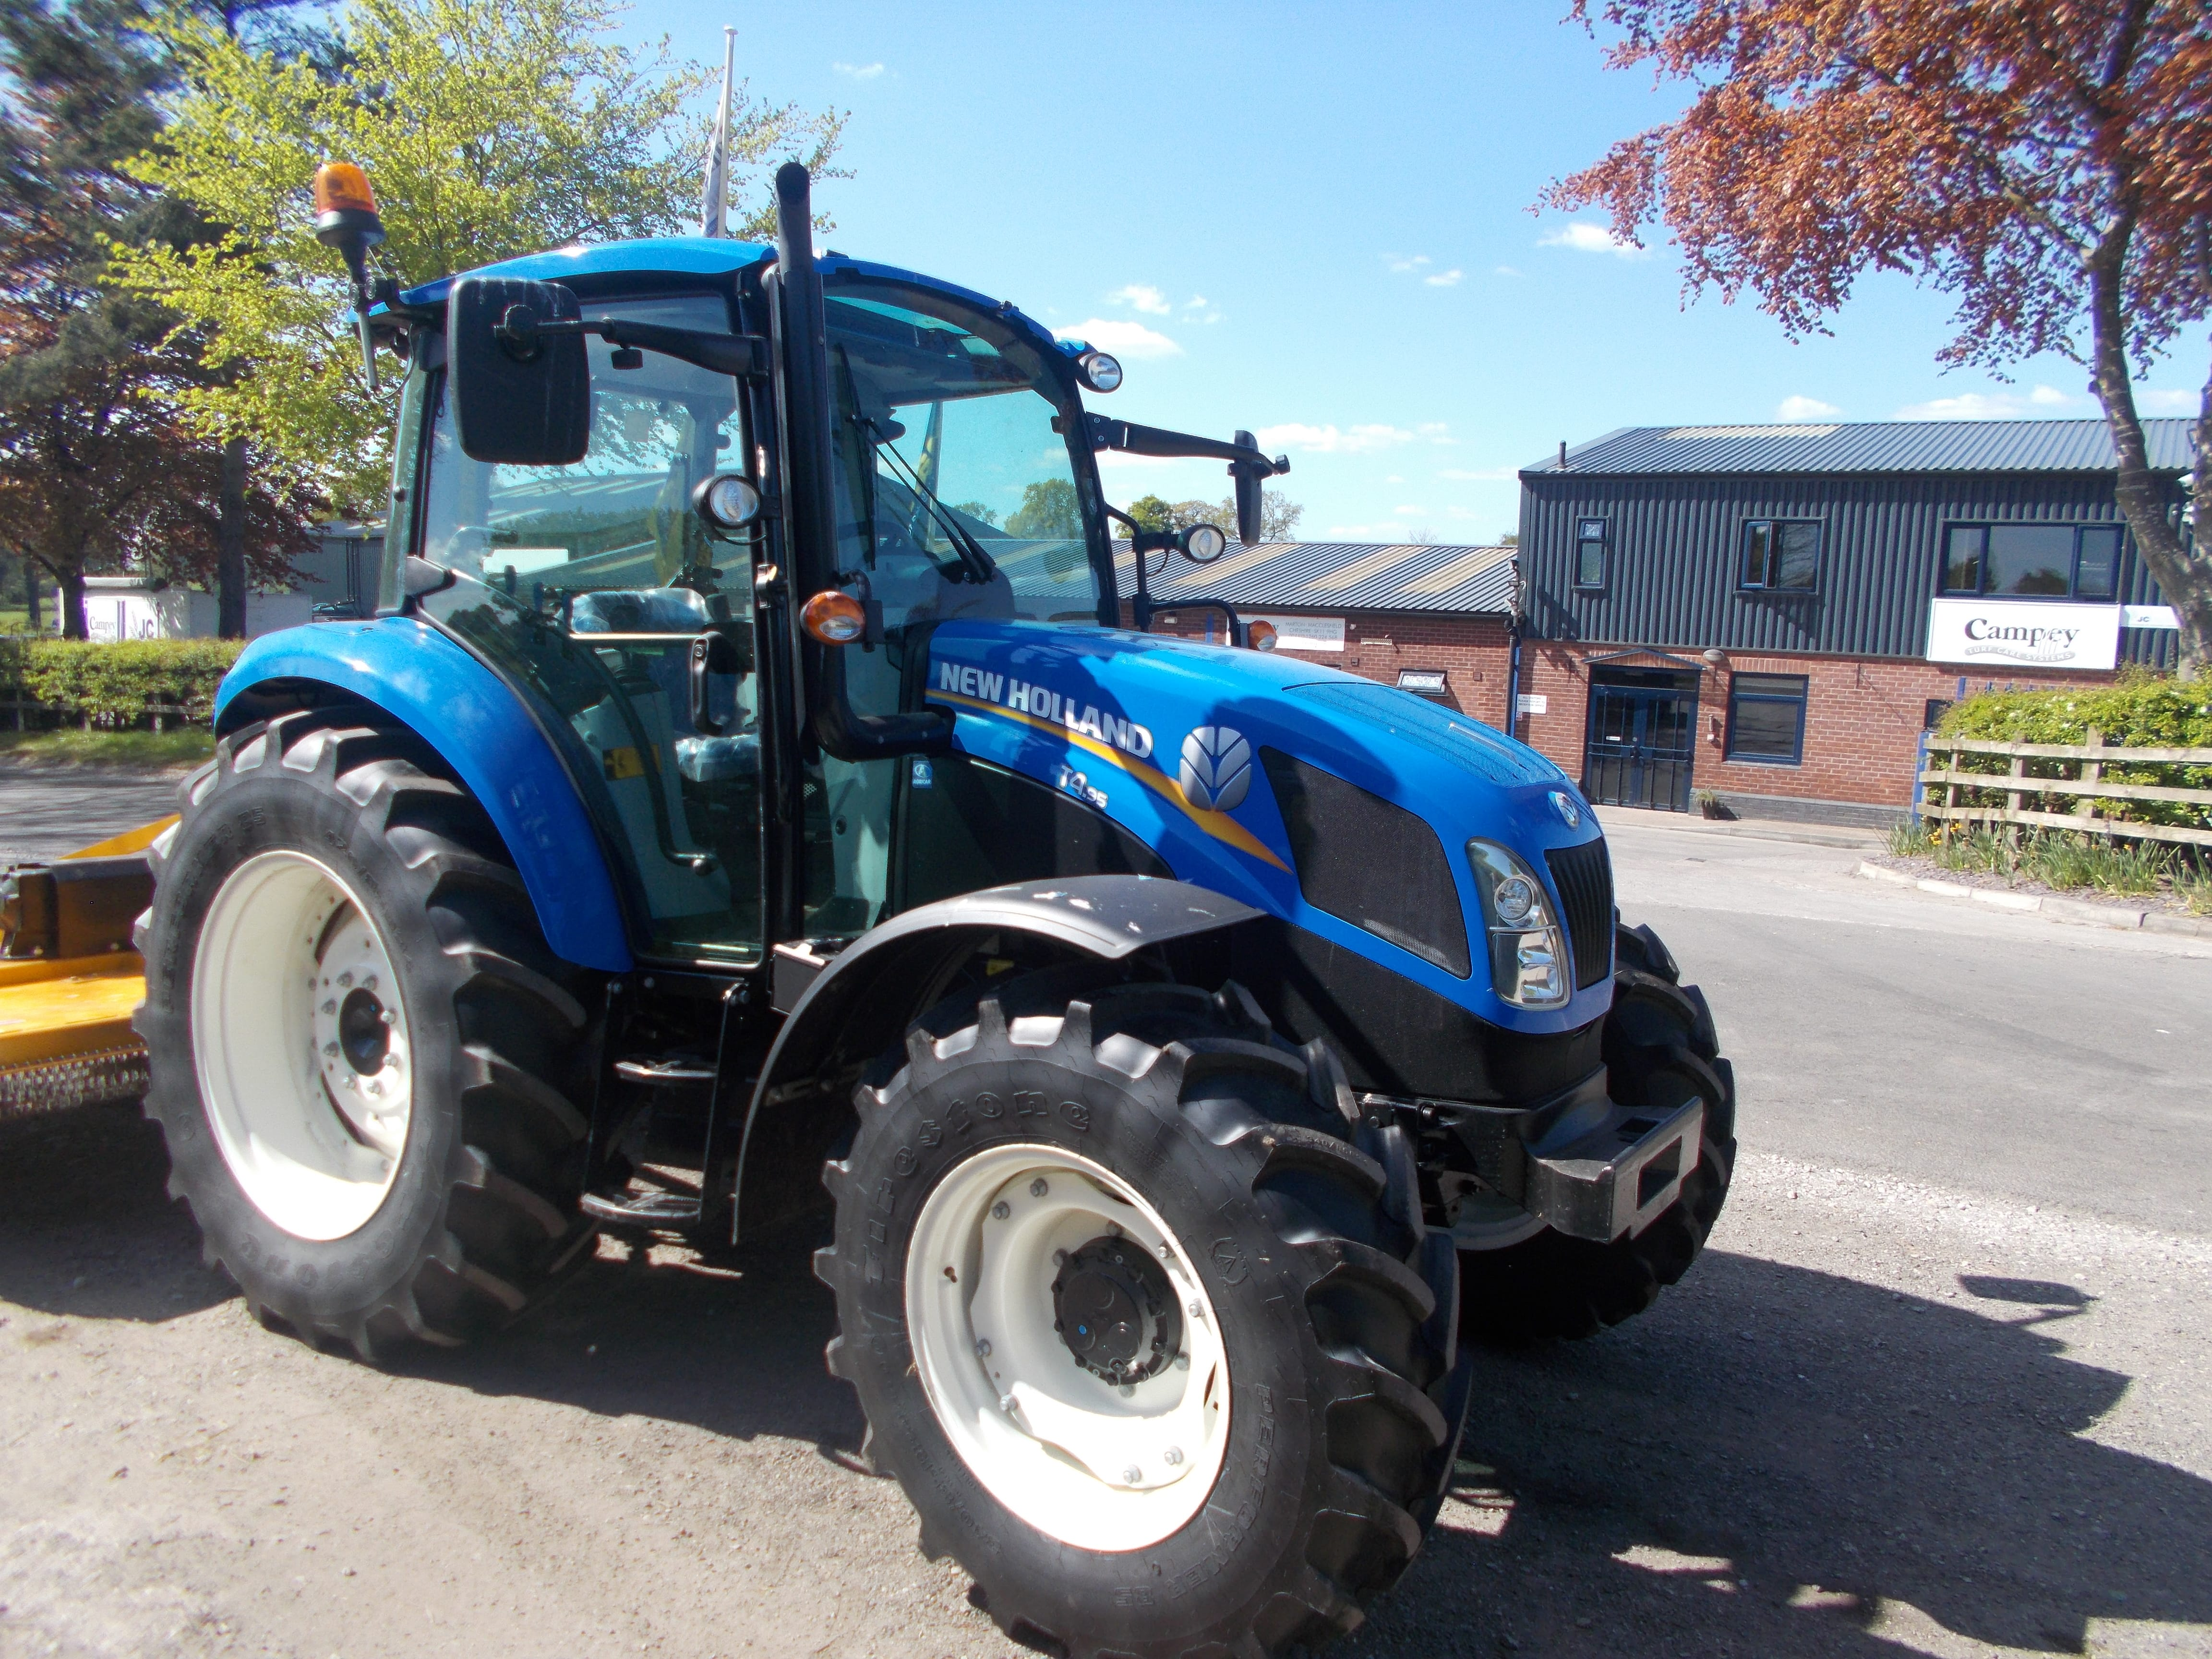 New Holland T4.95 Tractor U3906